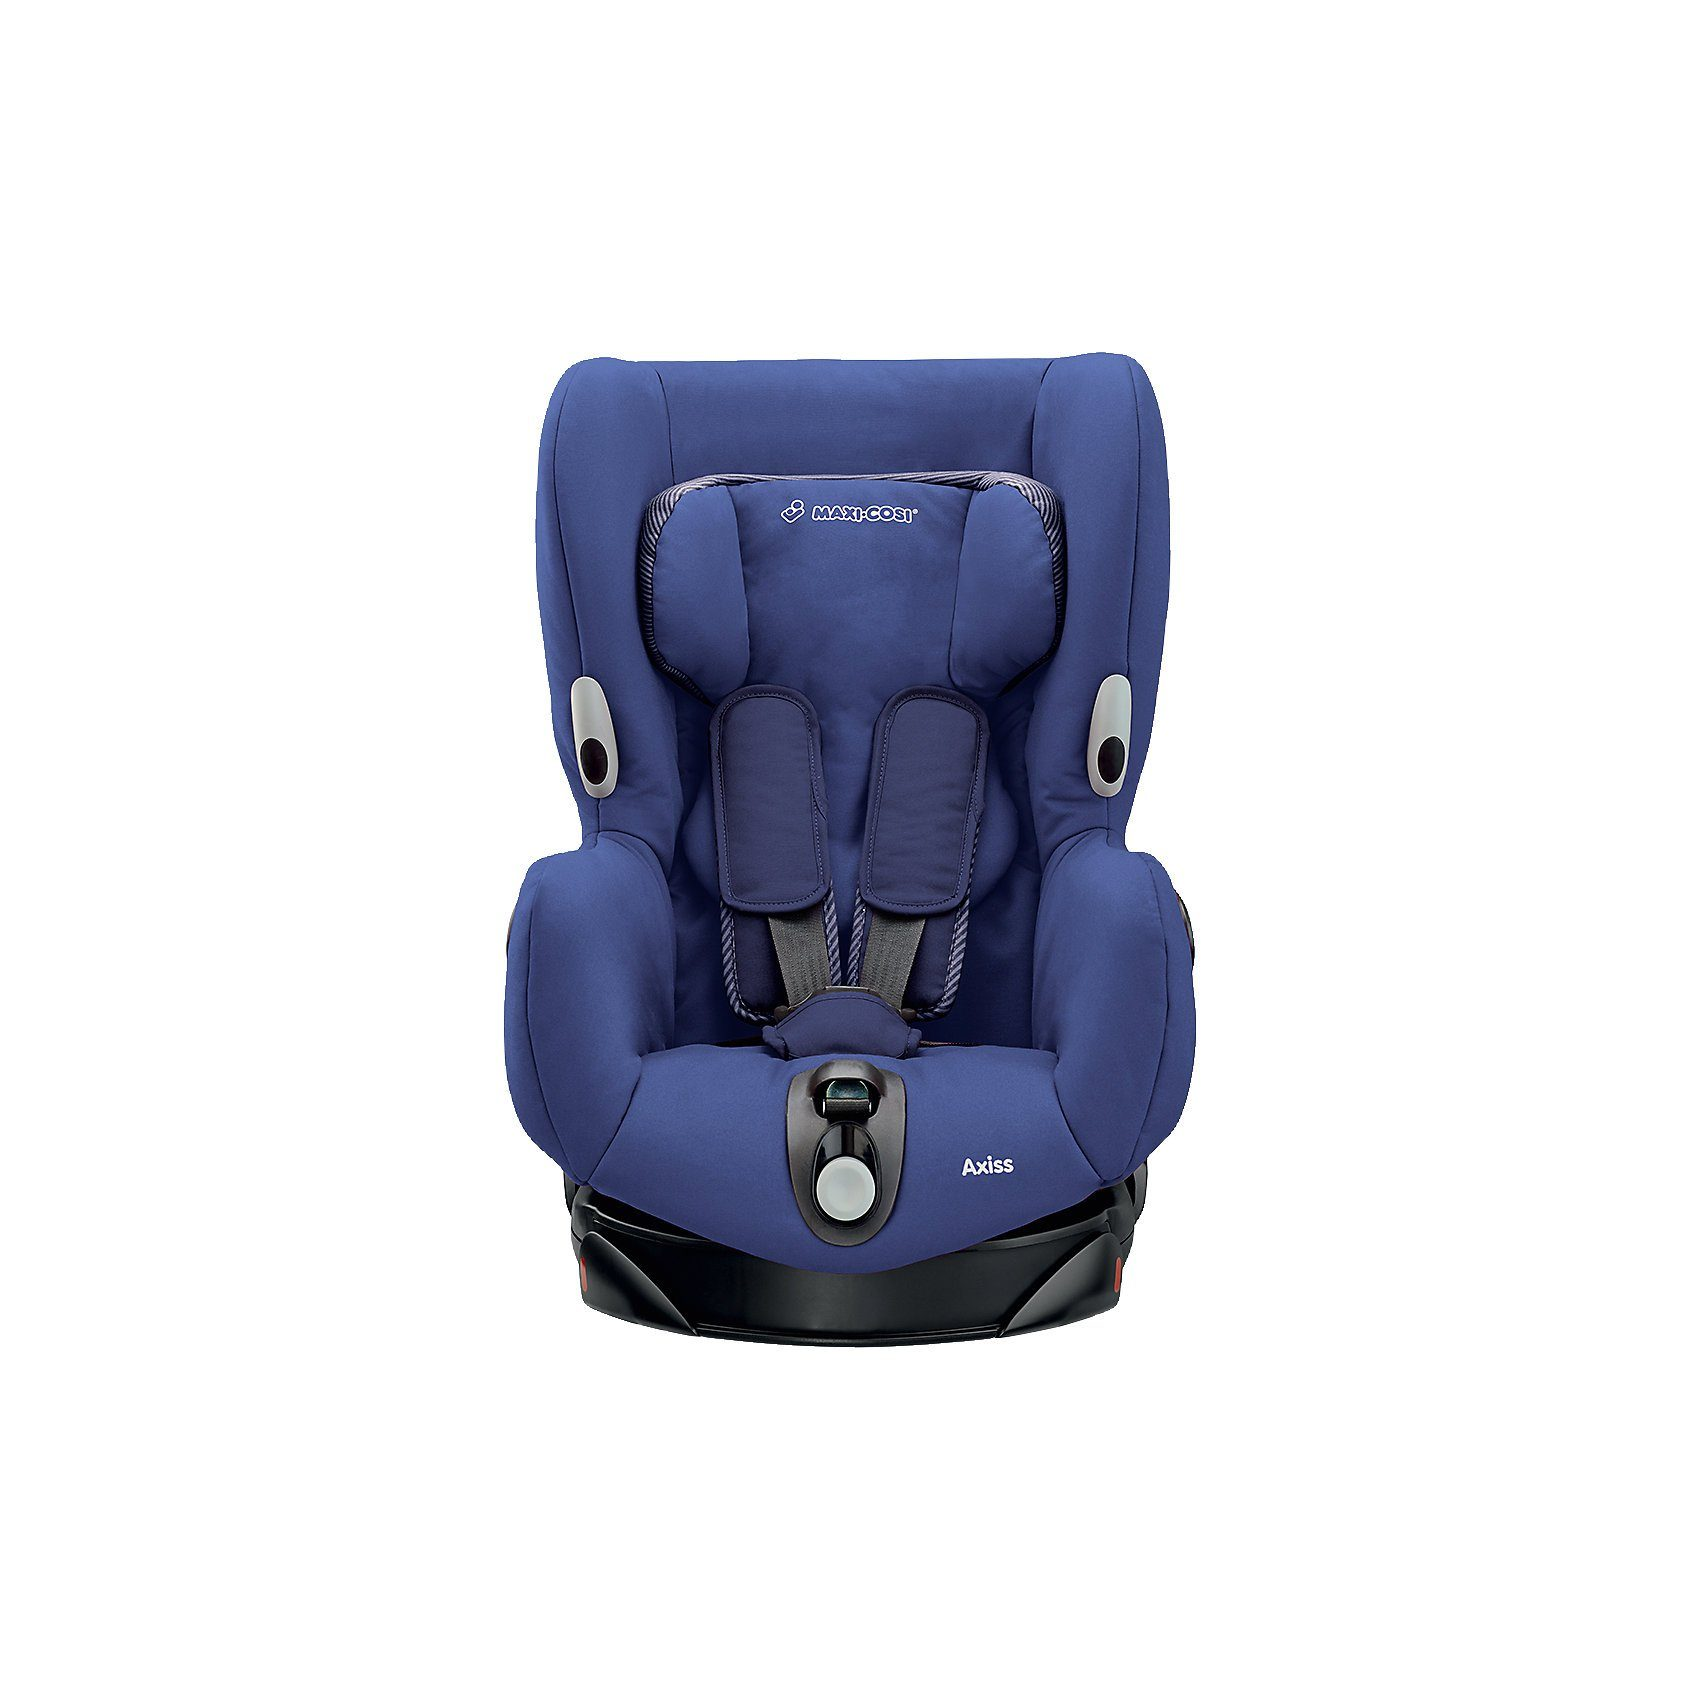 Maxi-Cosi Auto-Kindersitz Axiss, River Blue, 2017